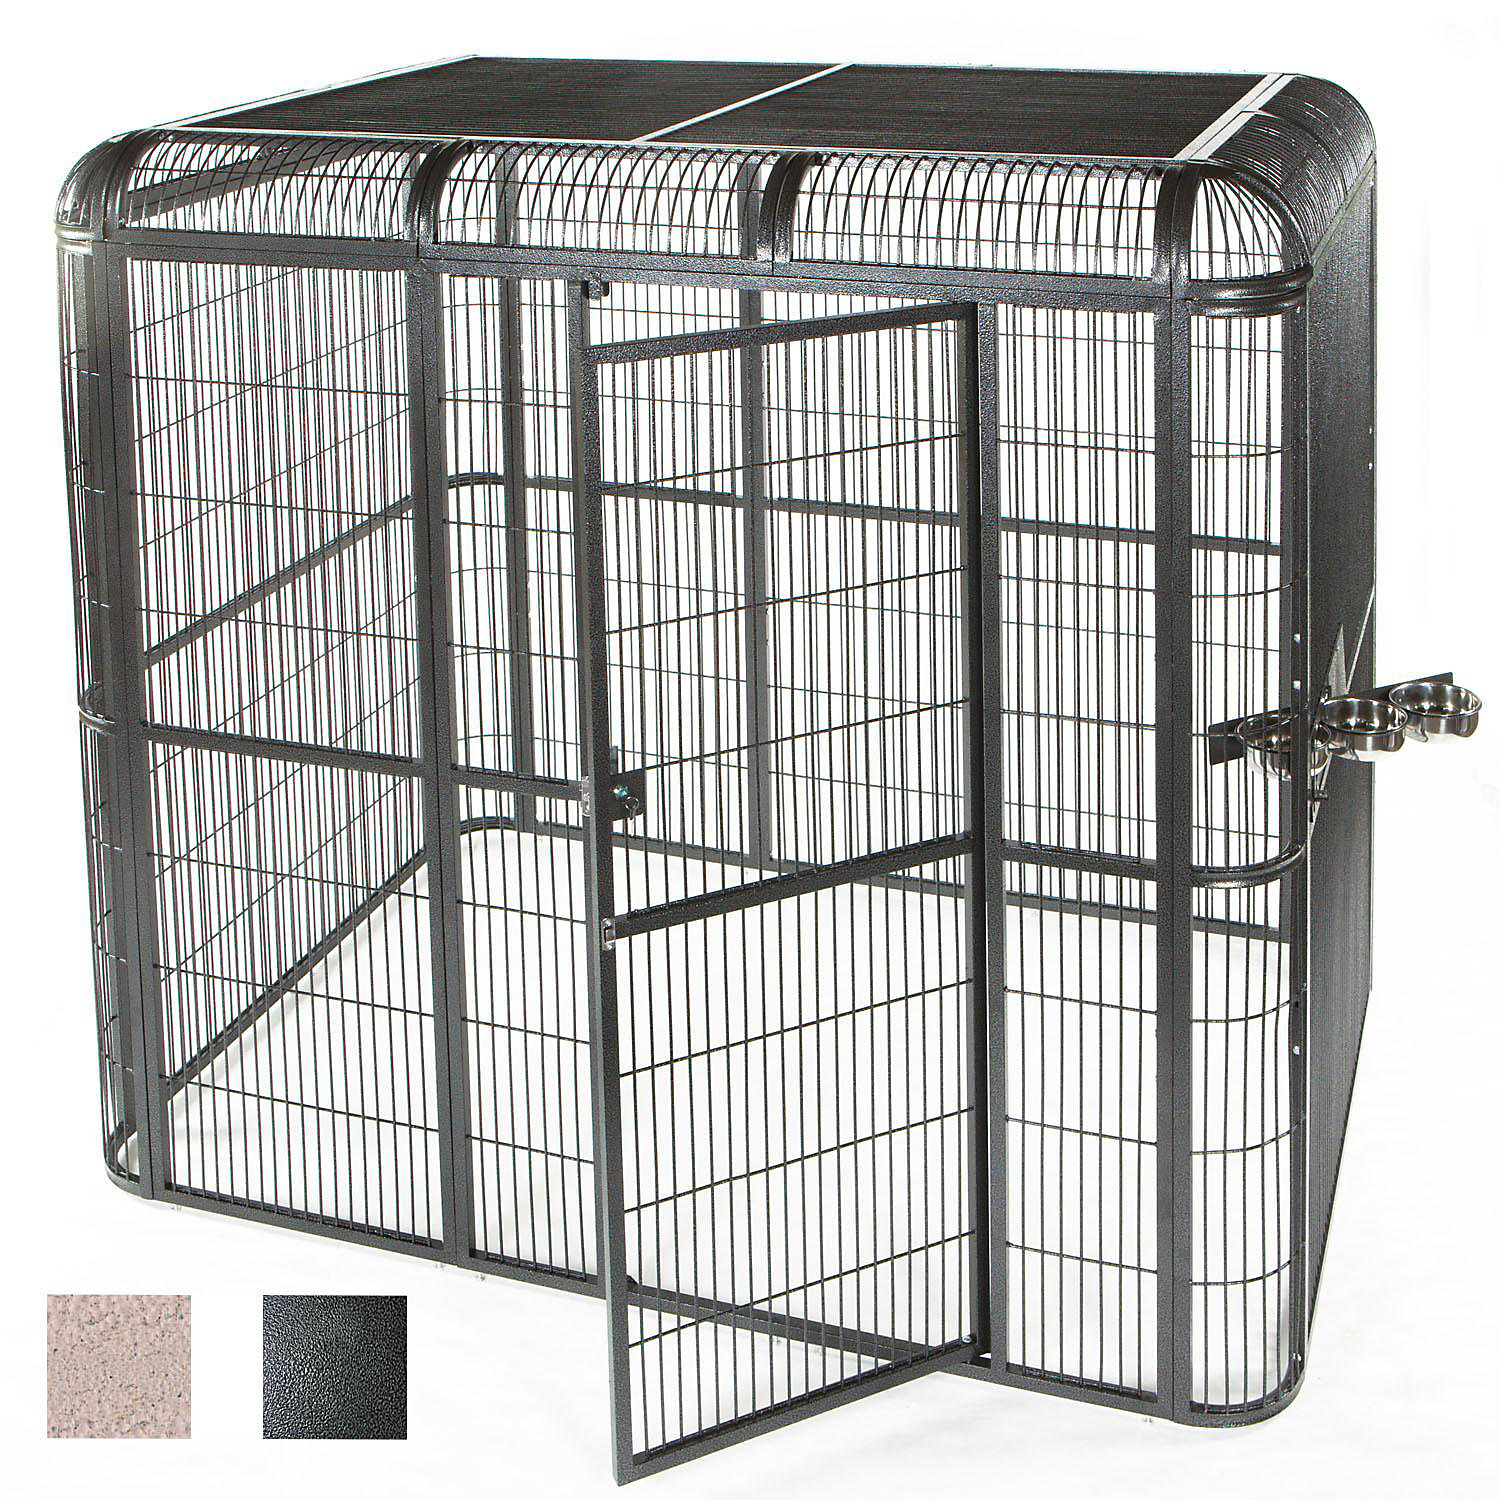 Ae Cage Company 62 X 62 Walk In Aviary In Black Small